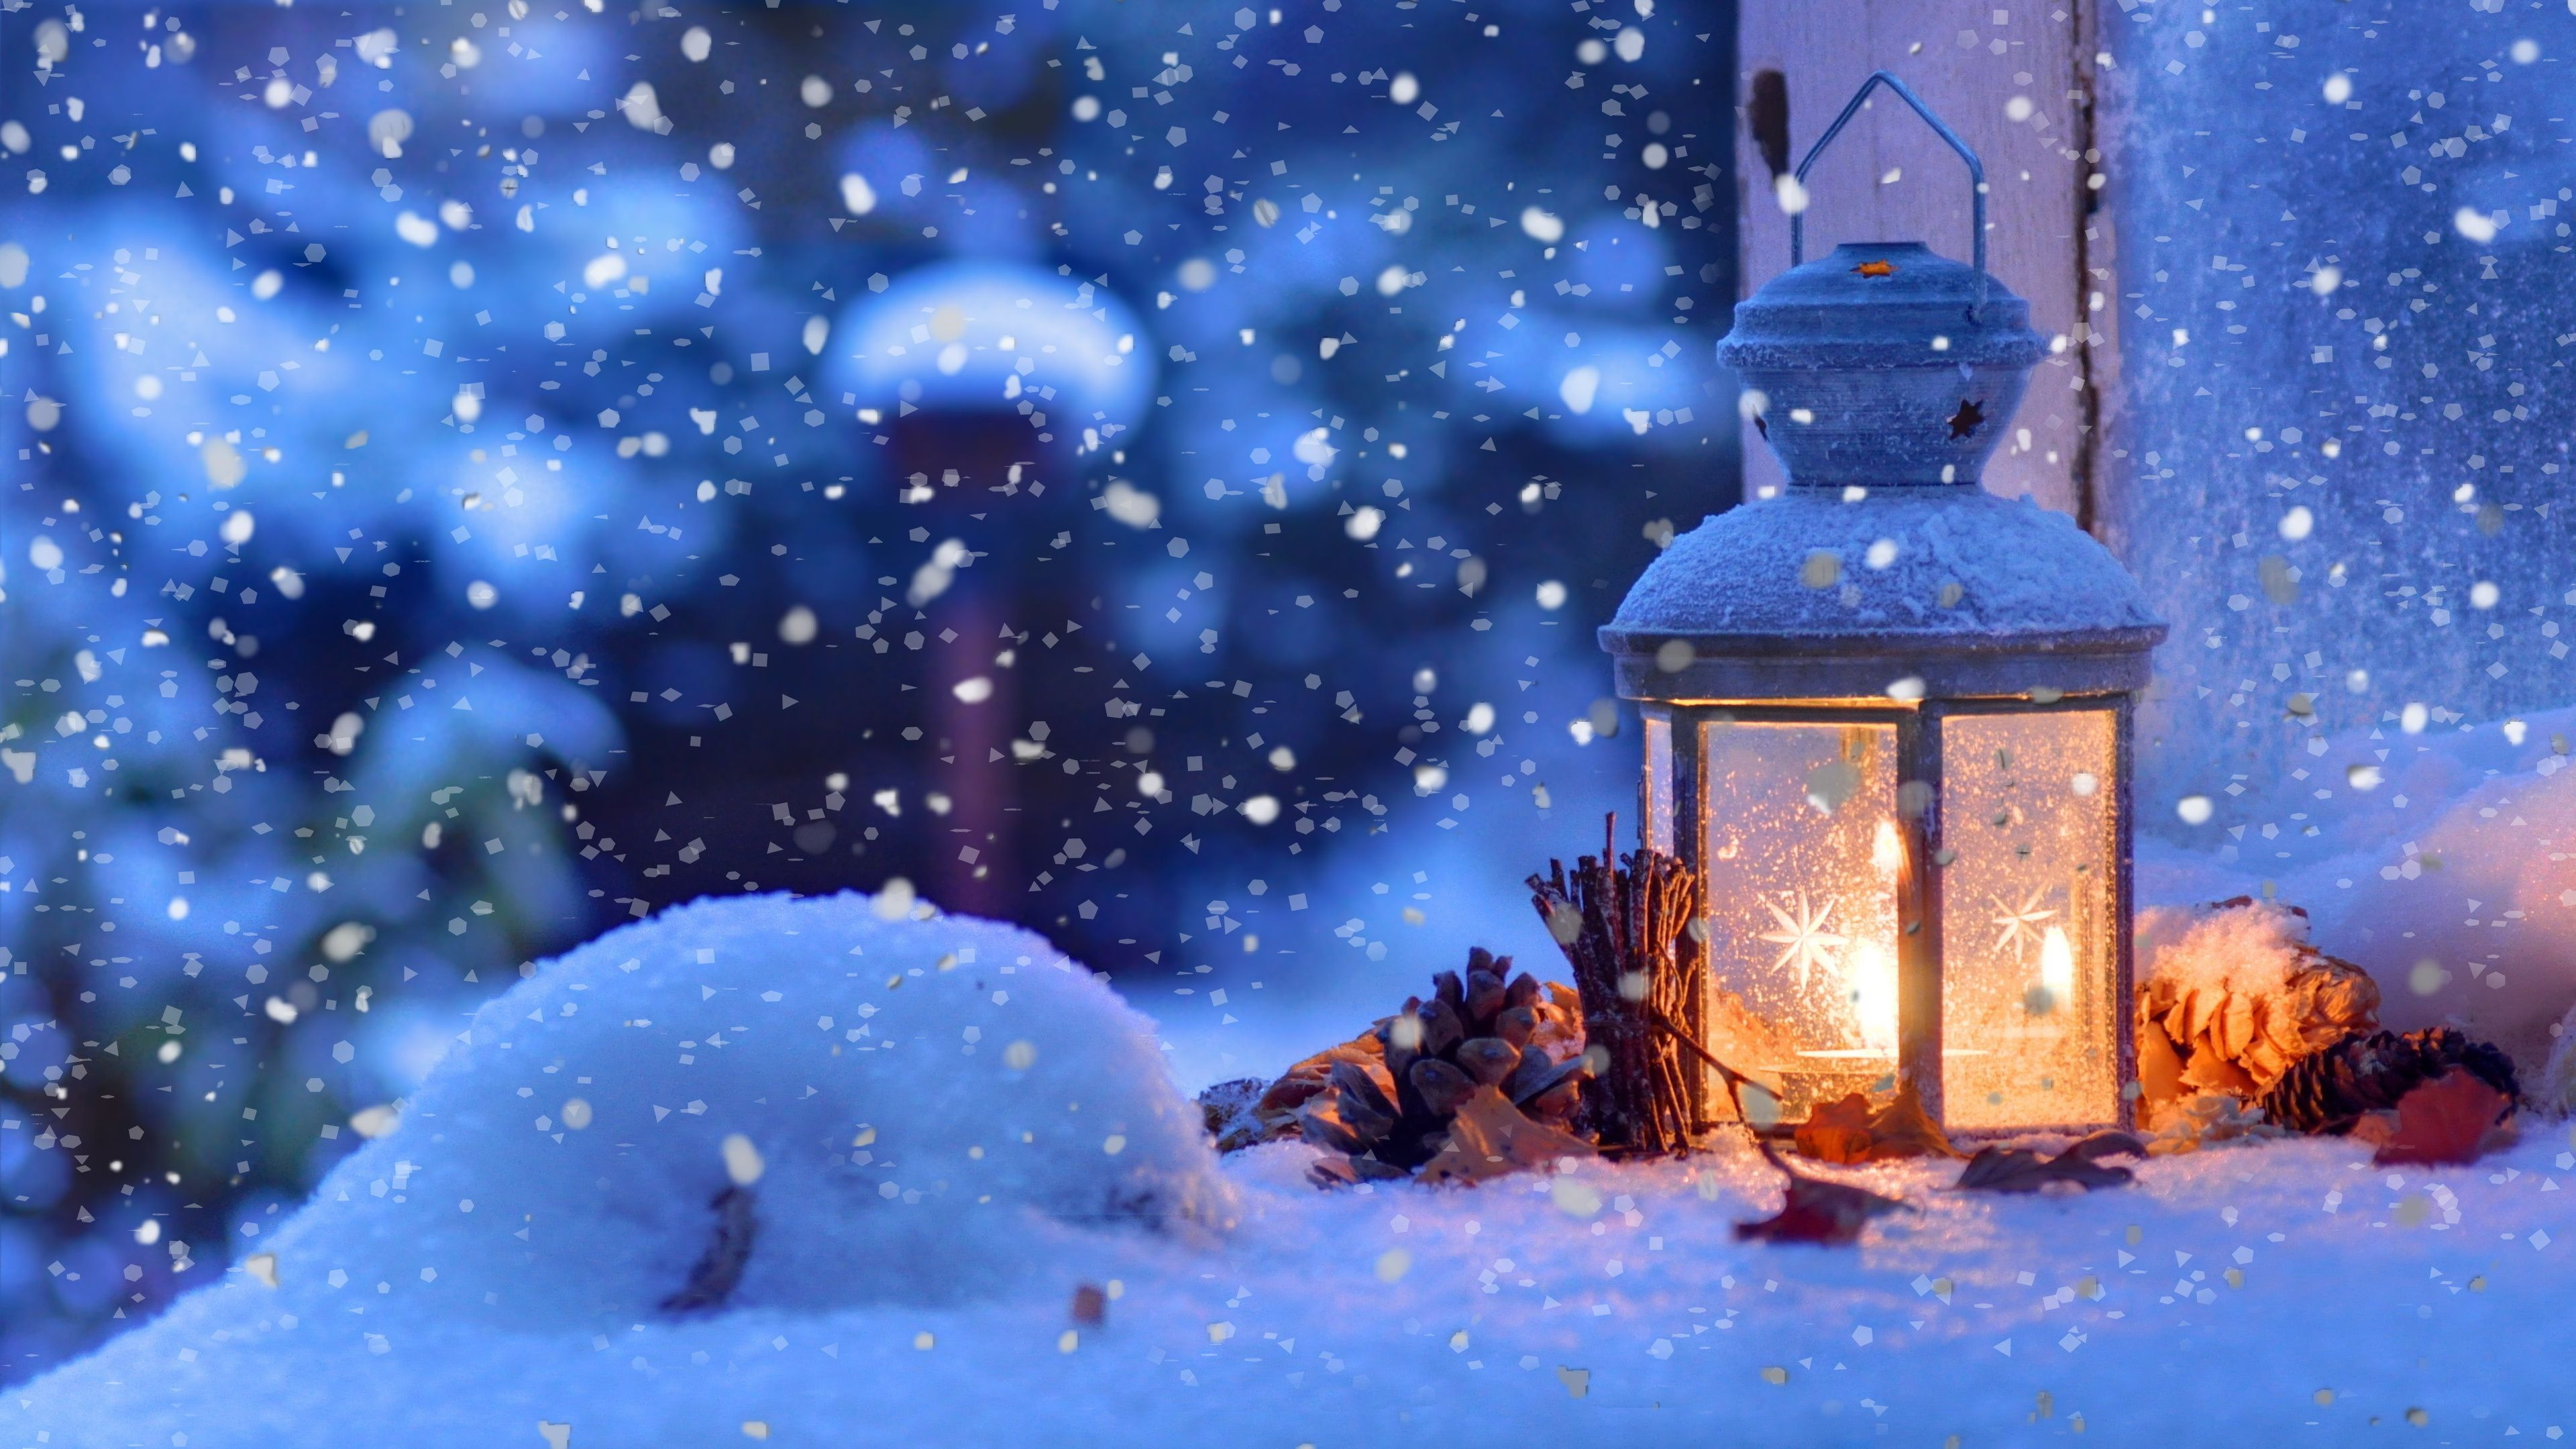 4k Image Background Of Cake Images 6 Christmas Cover Photo Winter Facebook Covers Winter Cover Photos